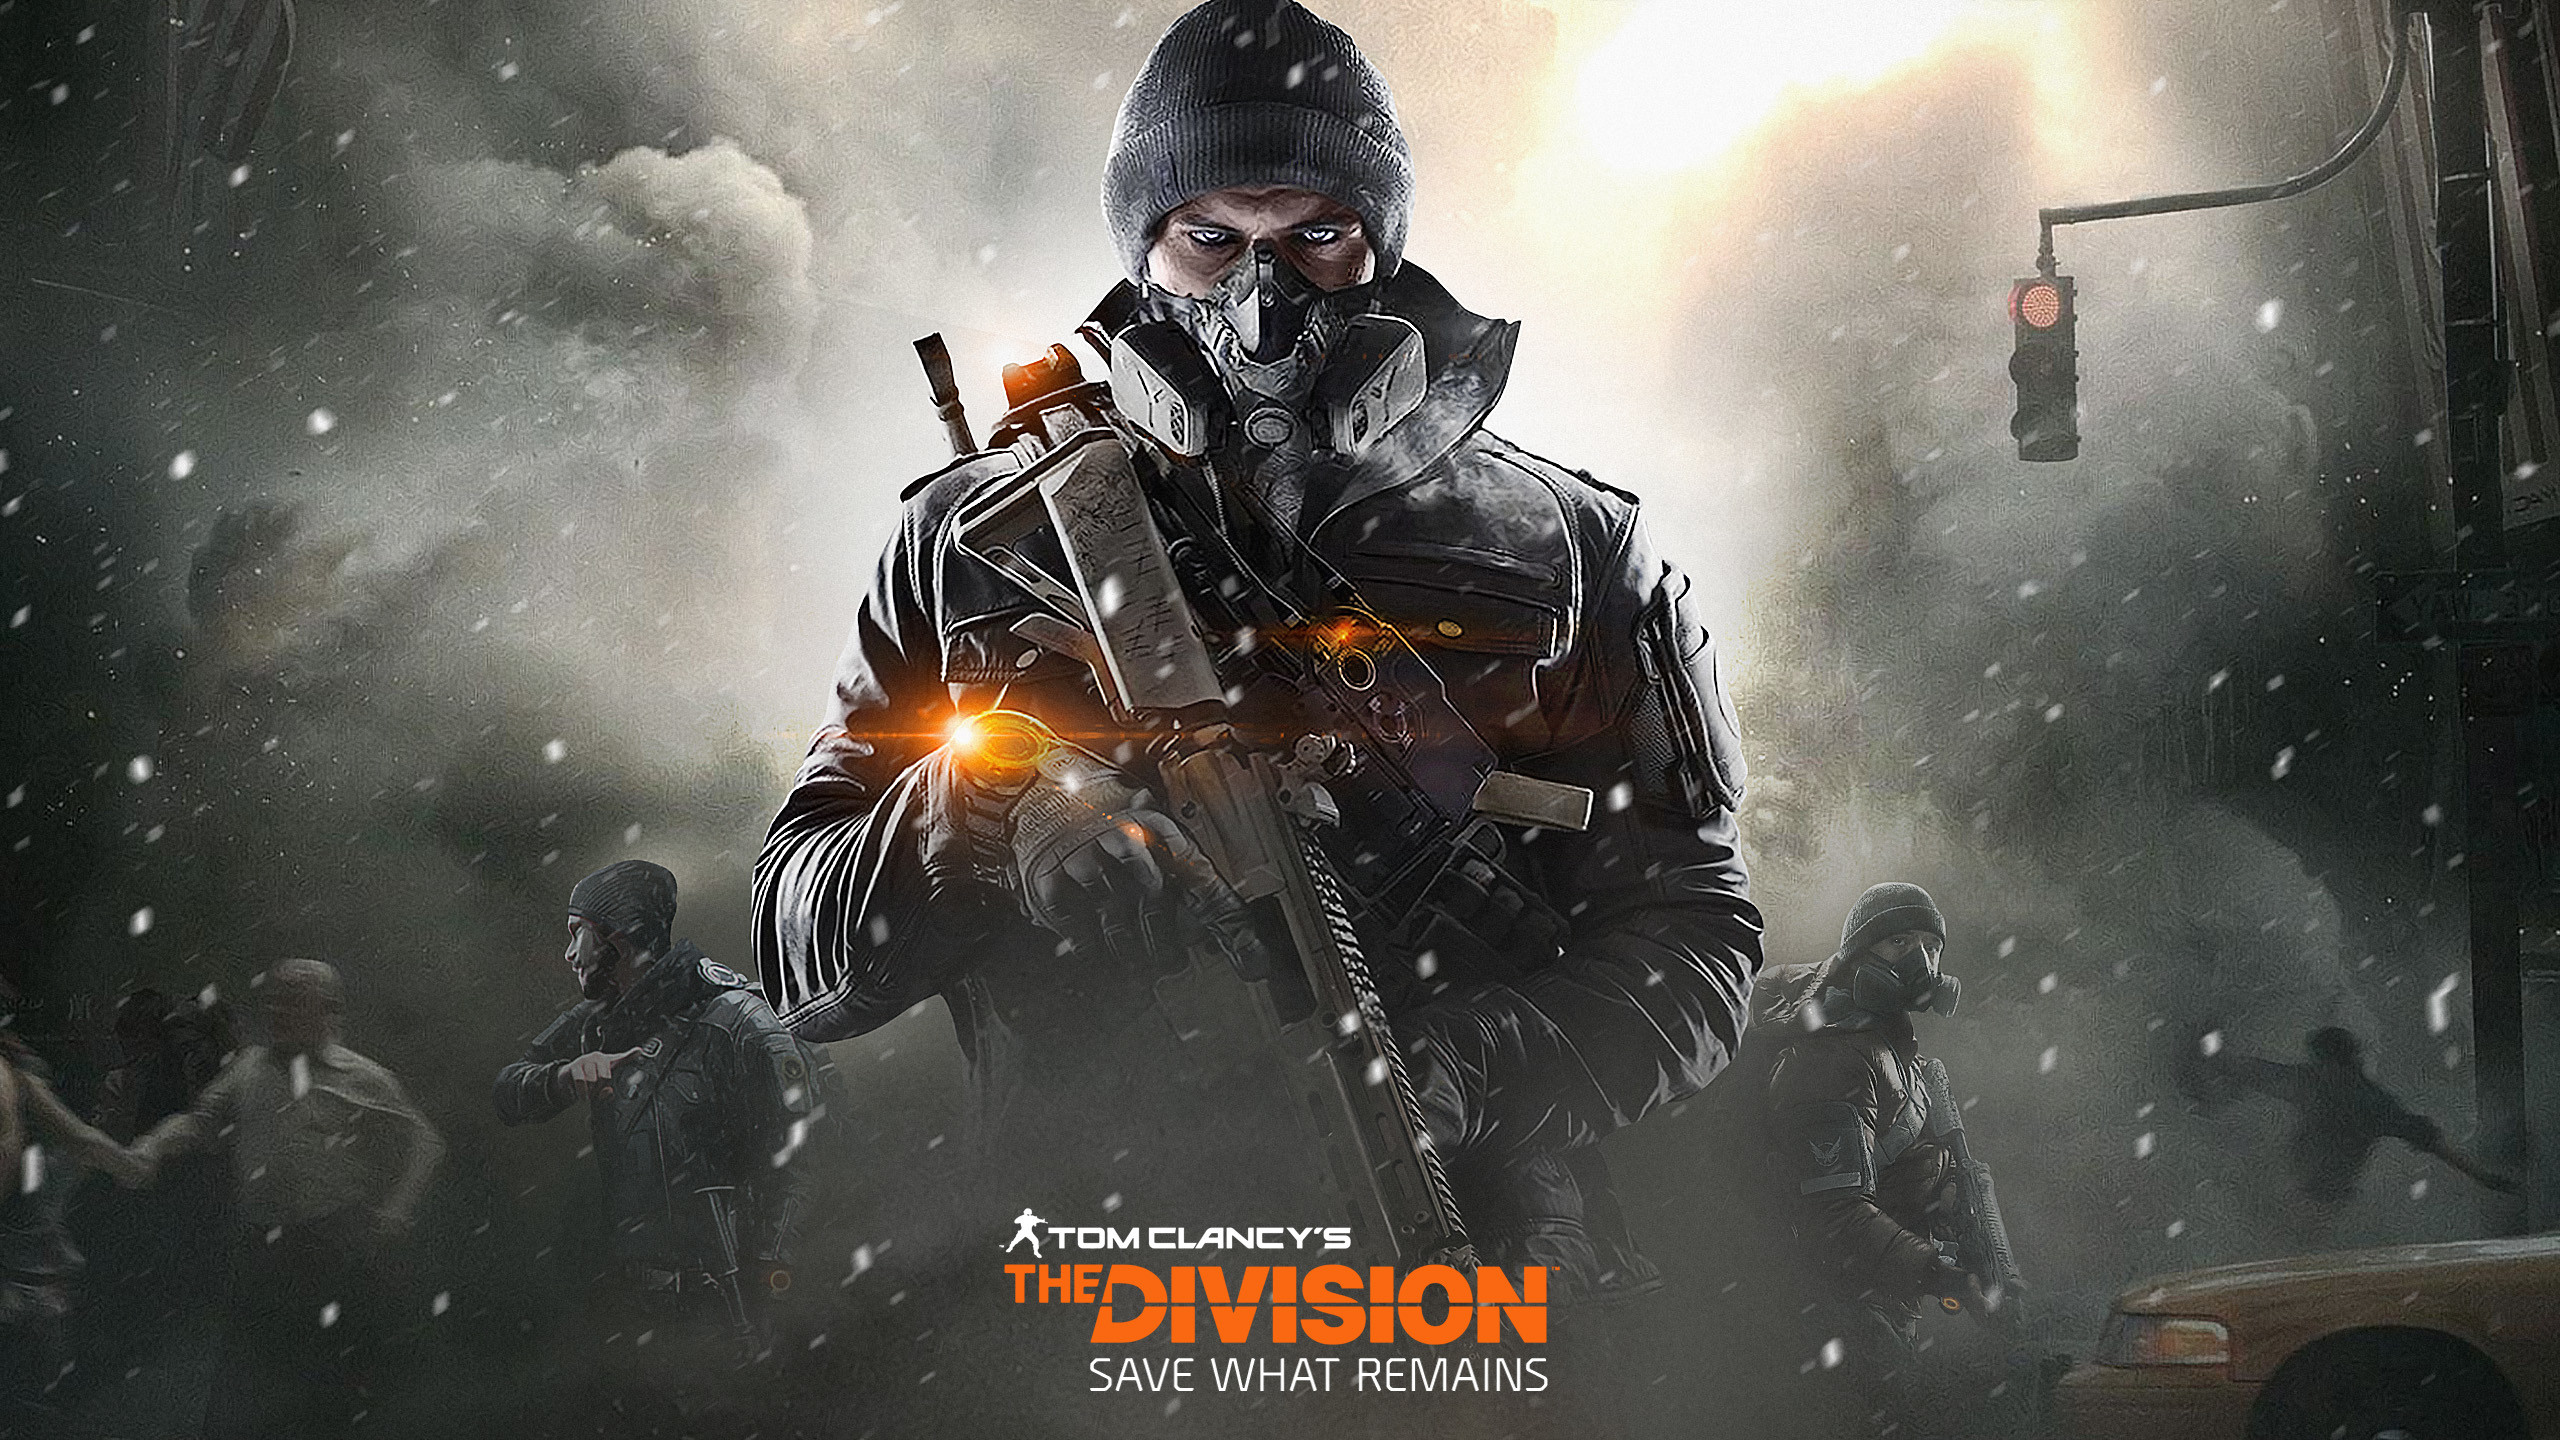 The Division Wallpaper Hd 87 Images